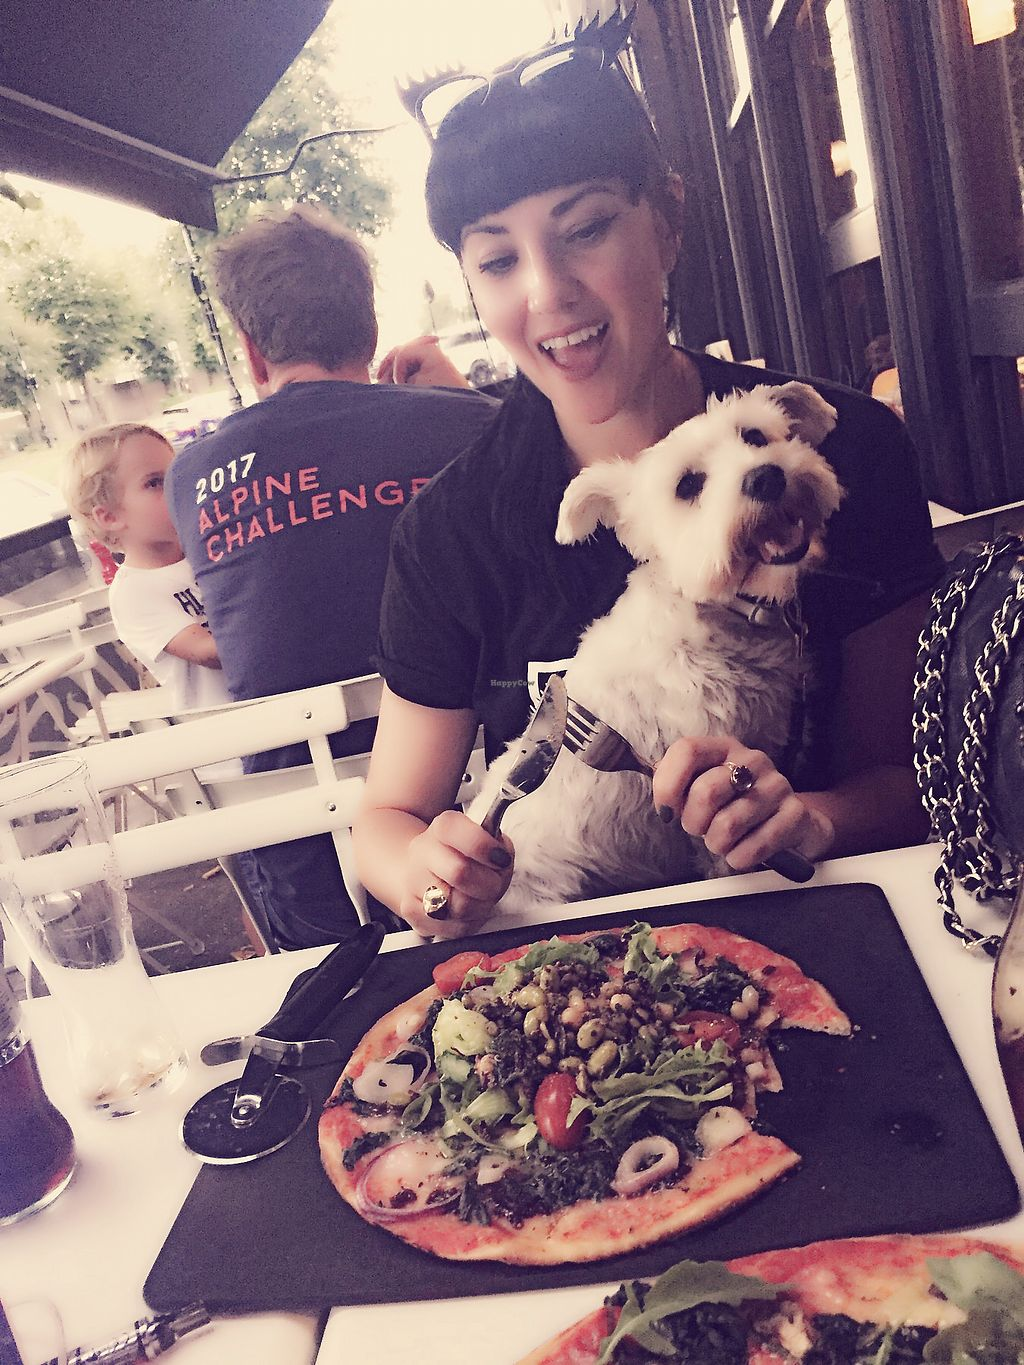 """Photo of Pizza Express  by <a href=""""/members/profile/TARAMCDONALD"""">TARAMCDONALD</a> <br/>Outside seating and great vegan options.  Dogs are welcome outside only :) <br/> August 29, 2017  - <a href='/contact/abuse/image/97958/298780'>Report</a>"""